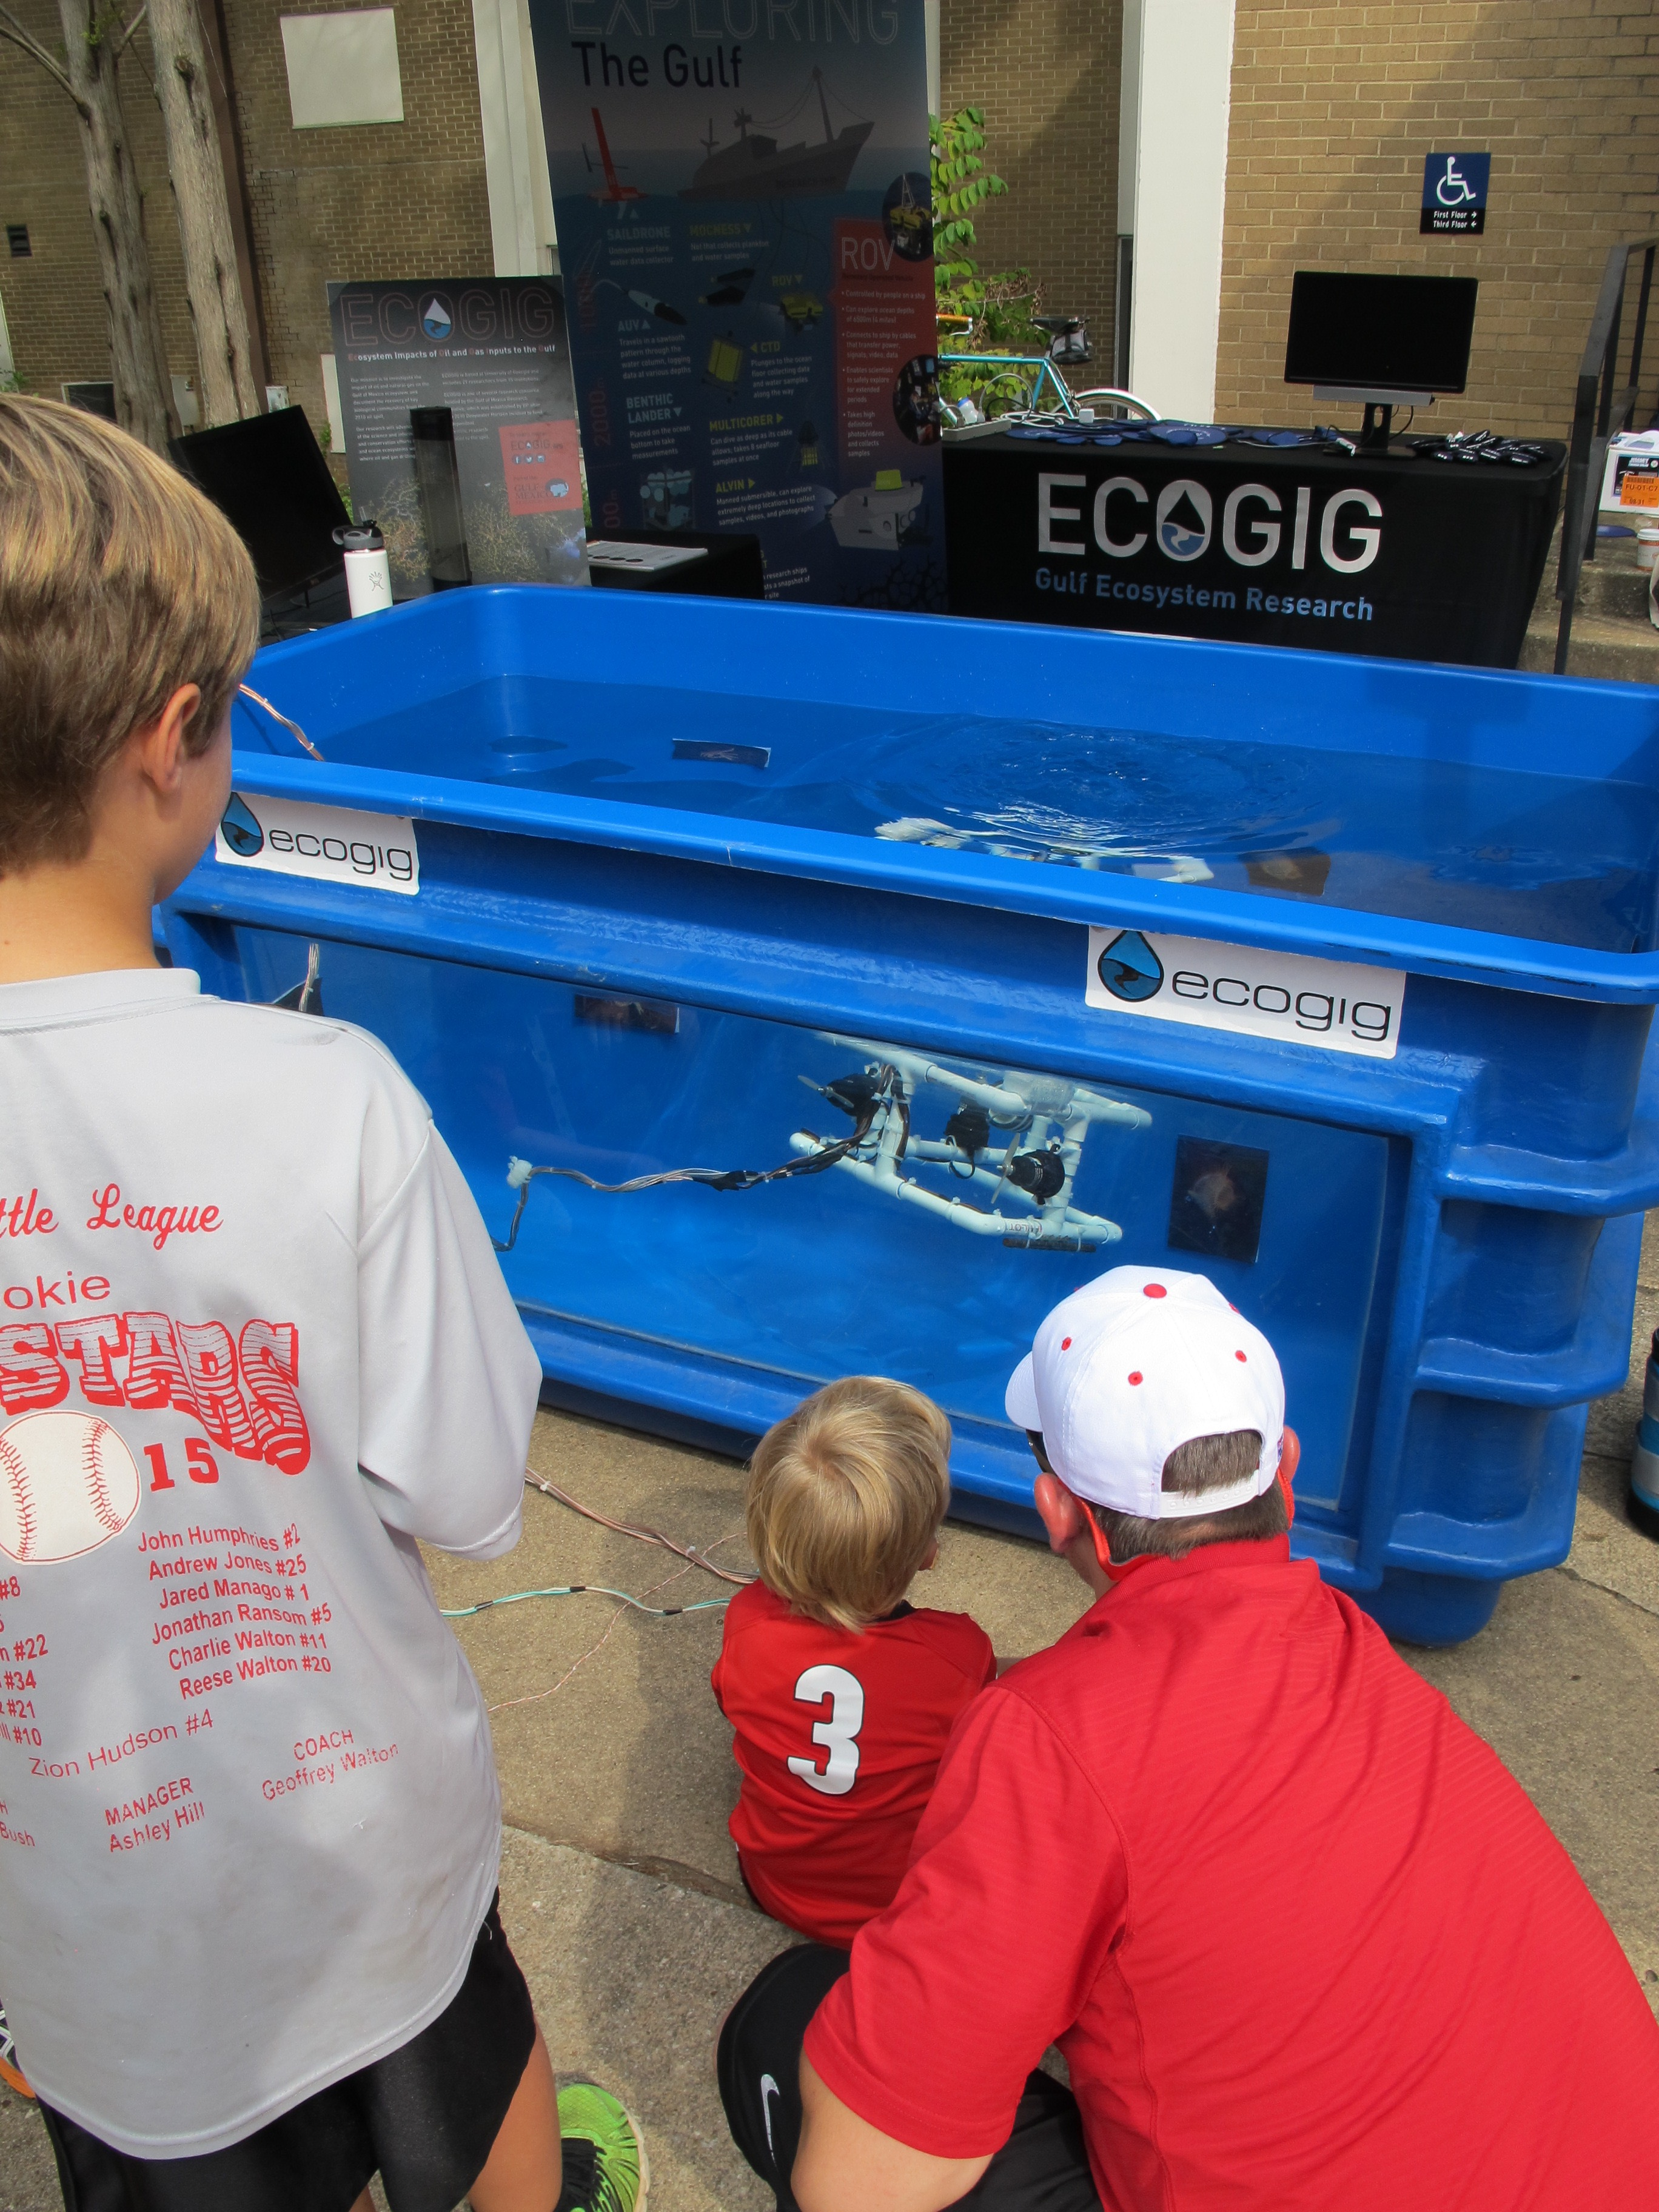 <div style='color:#000000;'><br /><br /><h2>UGA home football game 2015- Driving a ROV is so much fun!</h2>(C)&nbsp;ECOGIG</div>